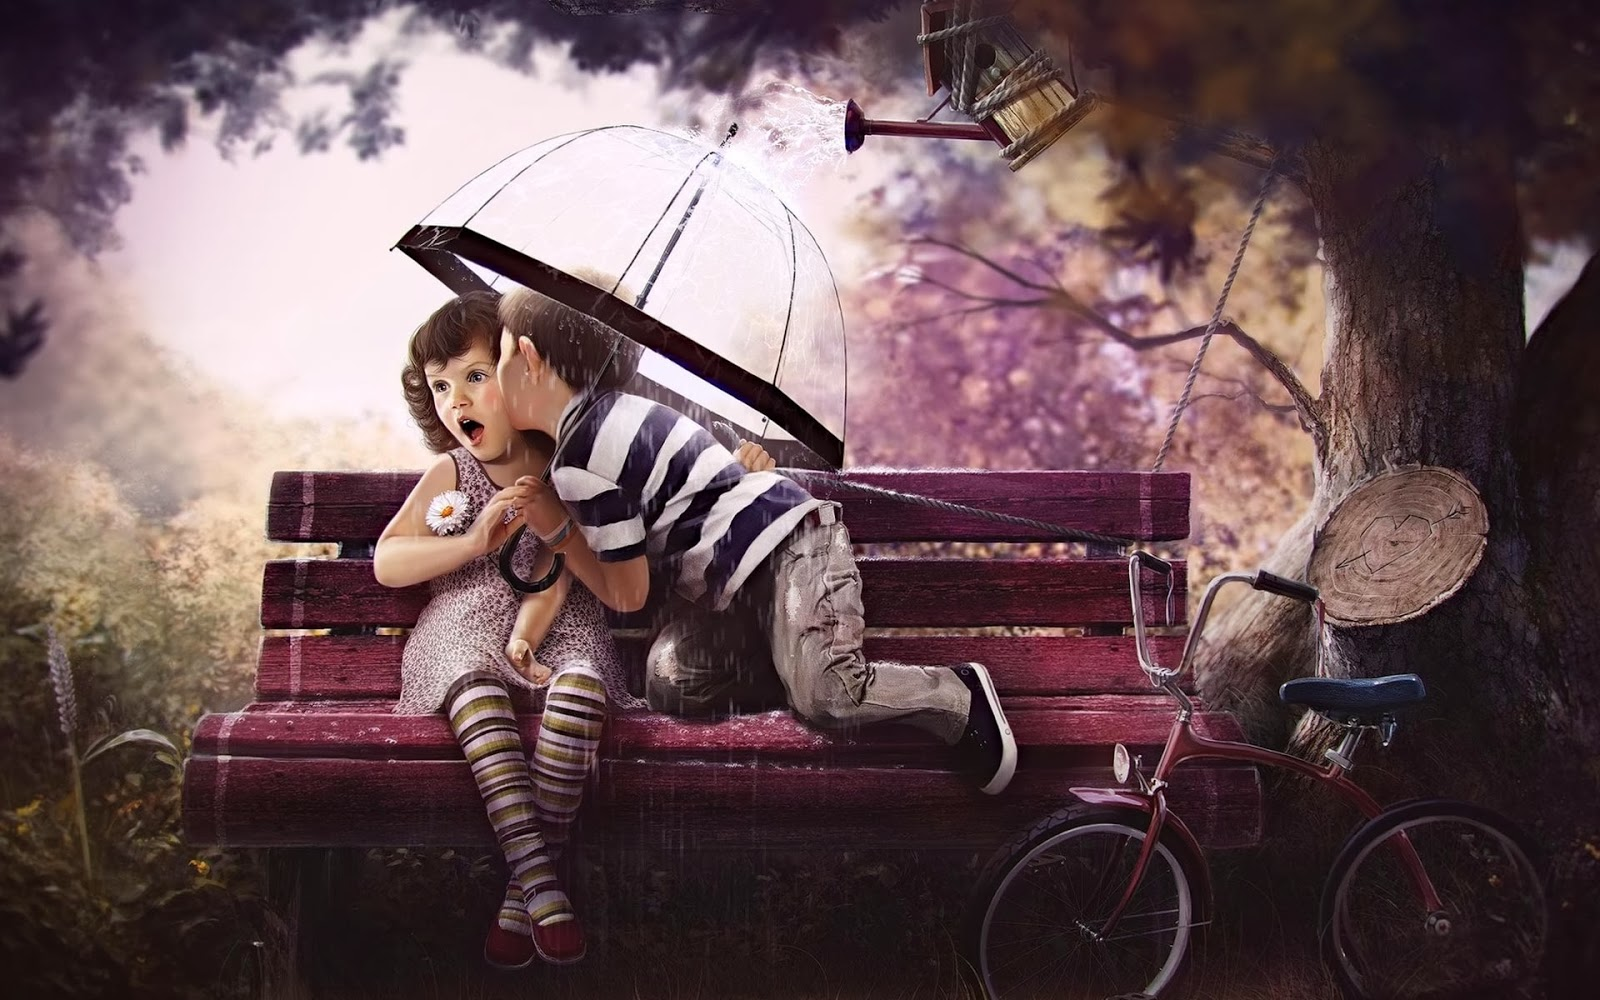 Wallpaper Hd Love Kiss cartoon : cute Little Love couple Pictures HD Free Download PIXHOME